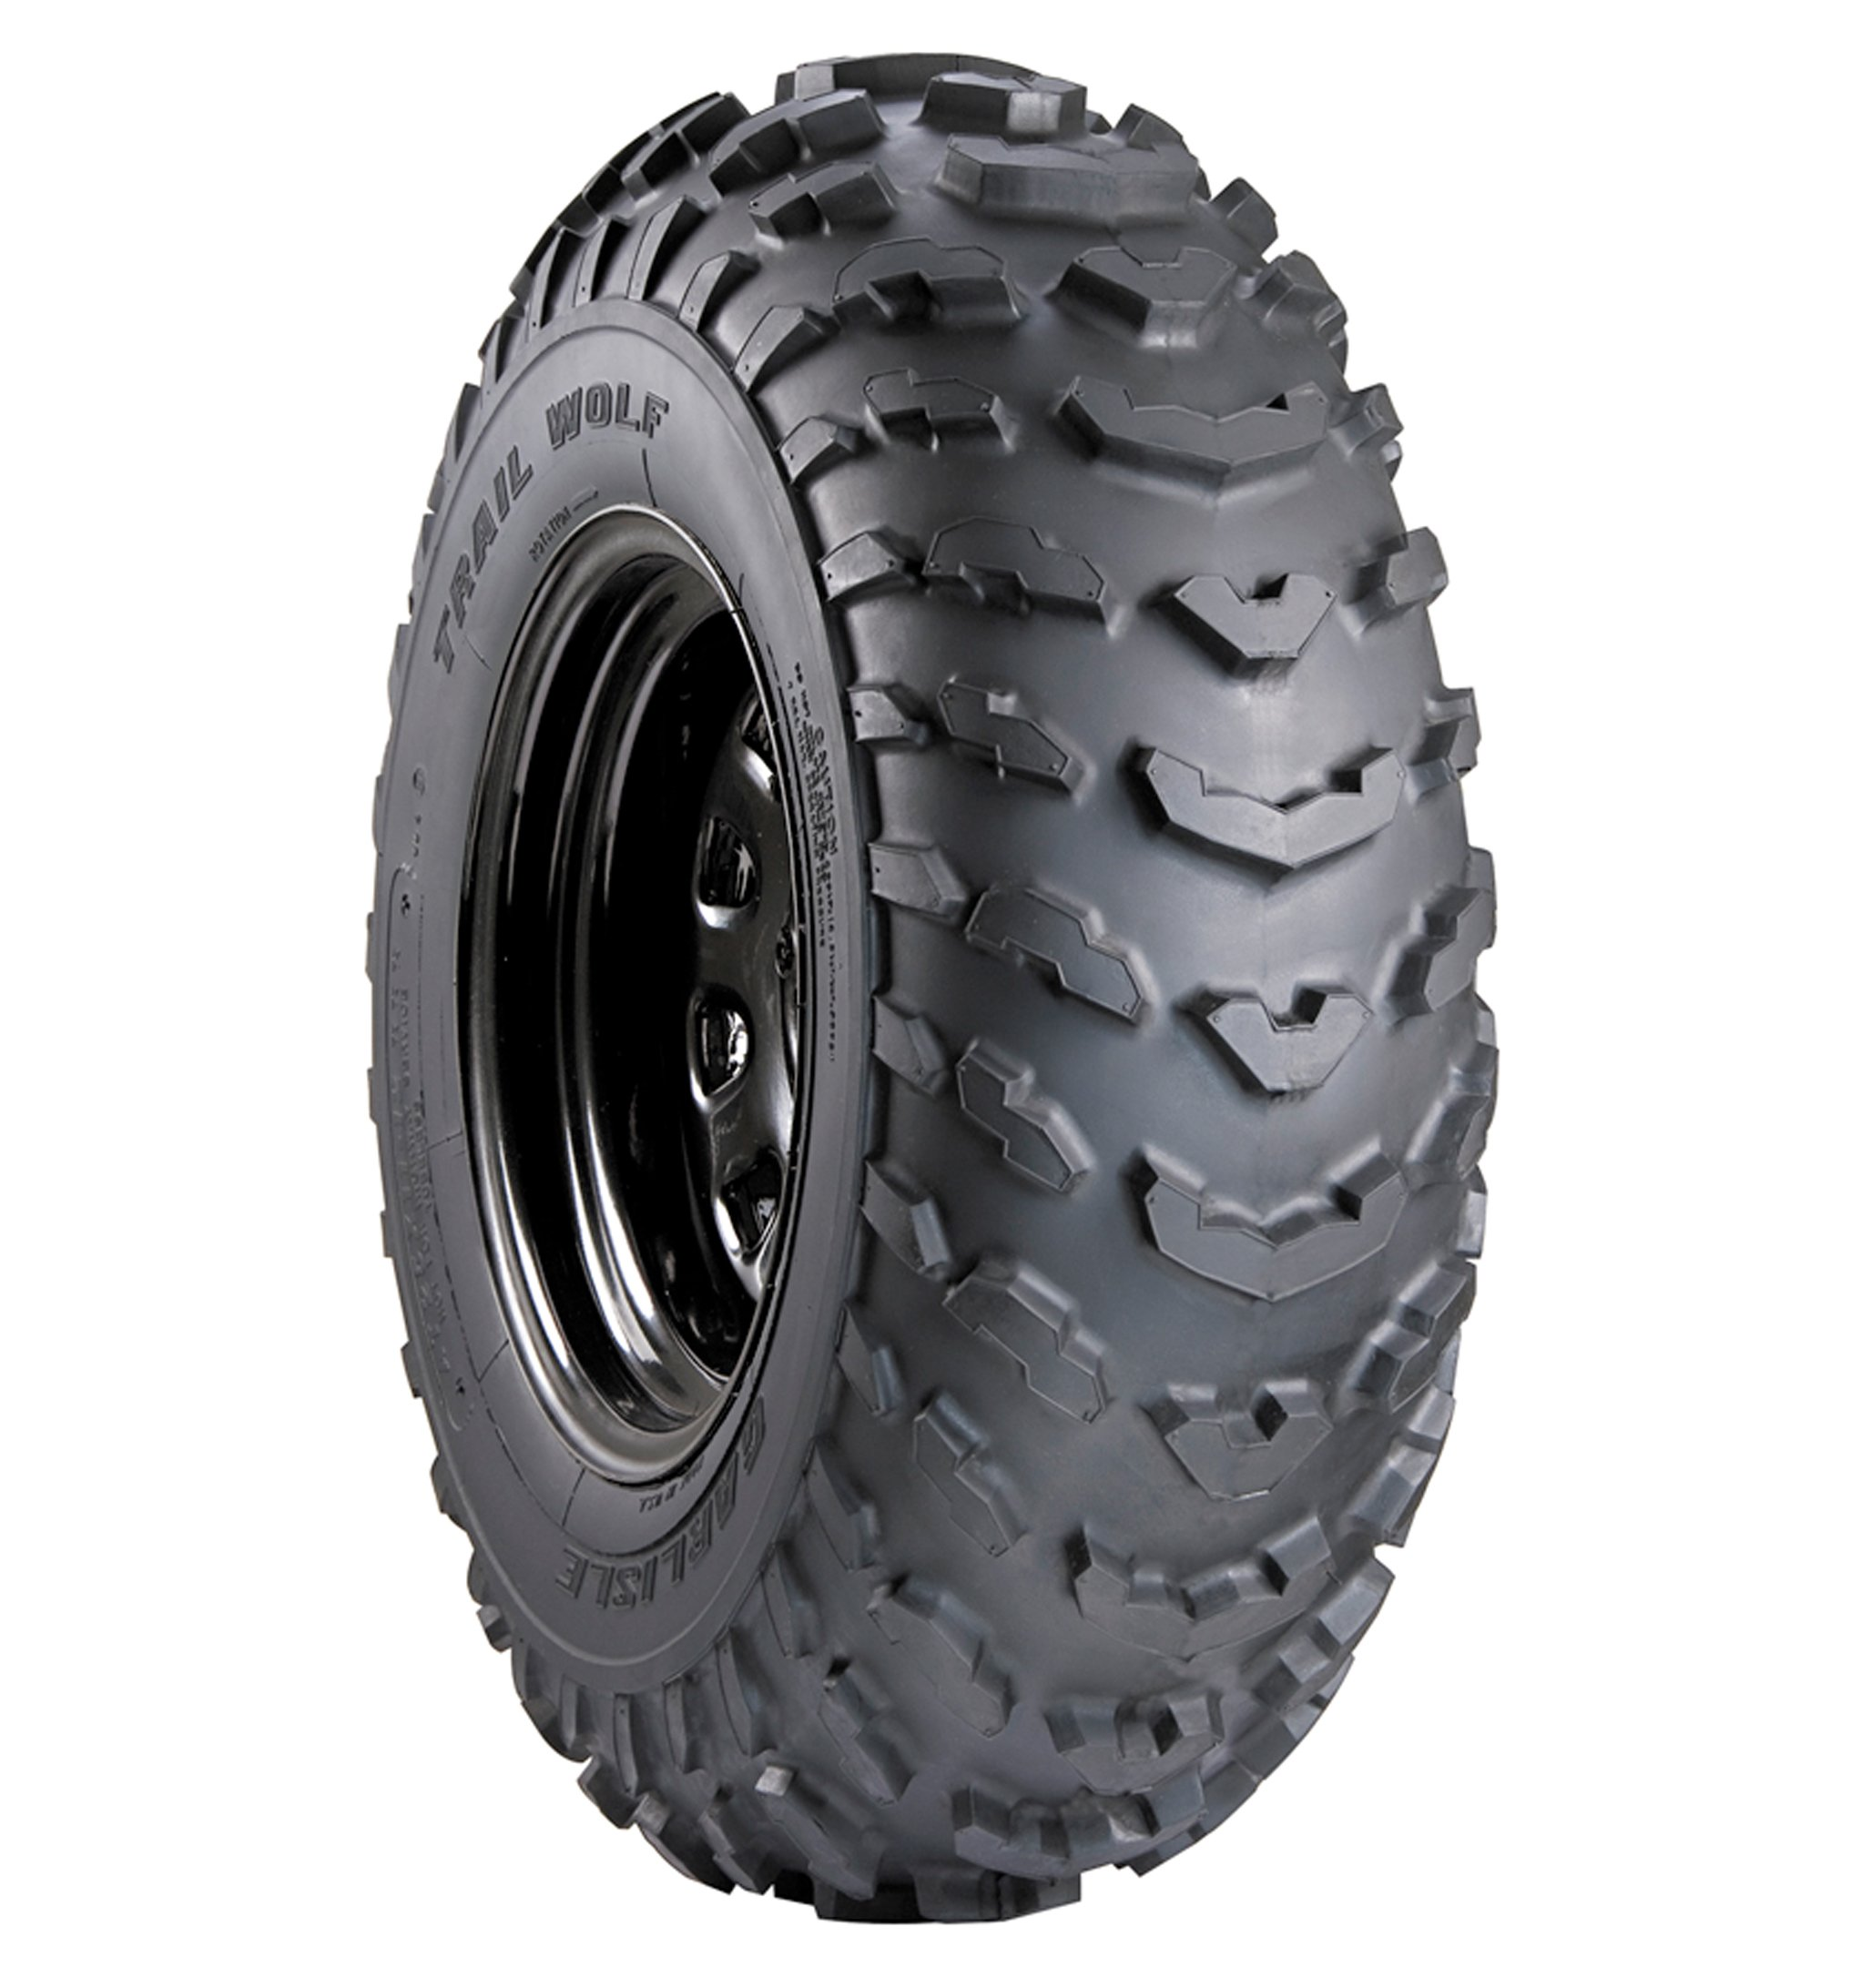 Carlisle Trail Wolf ATV Tire - 22X10-10